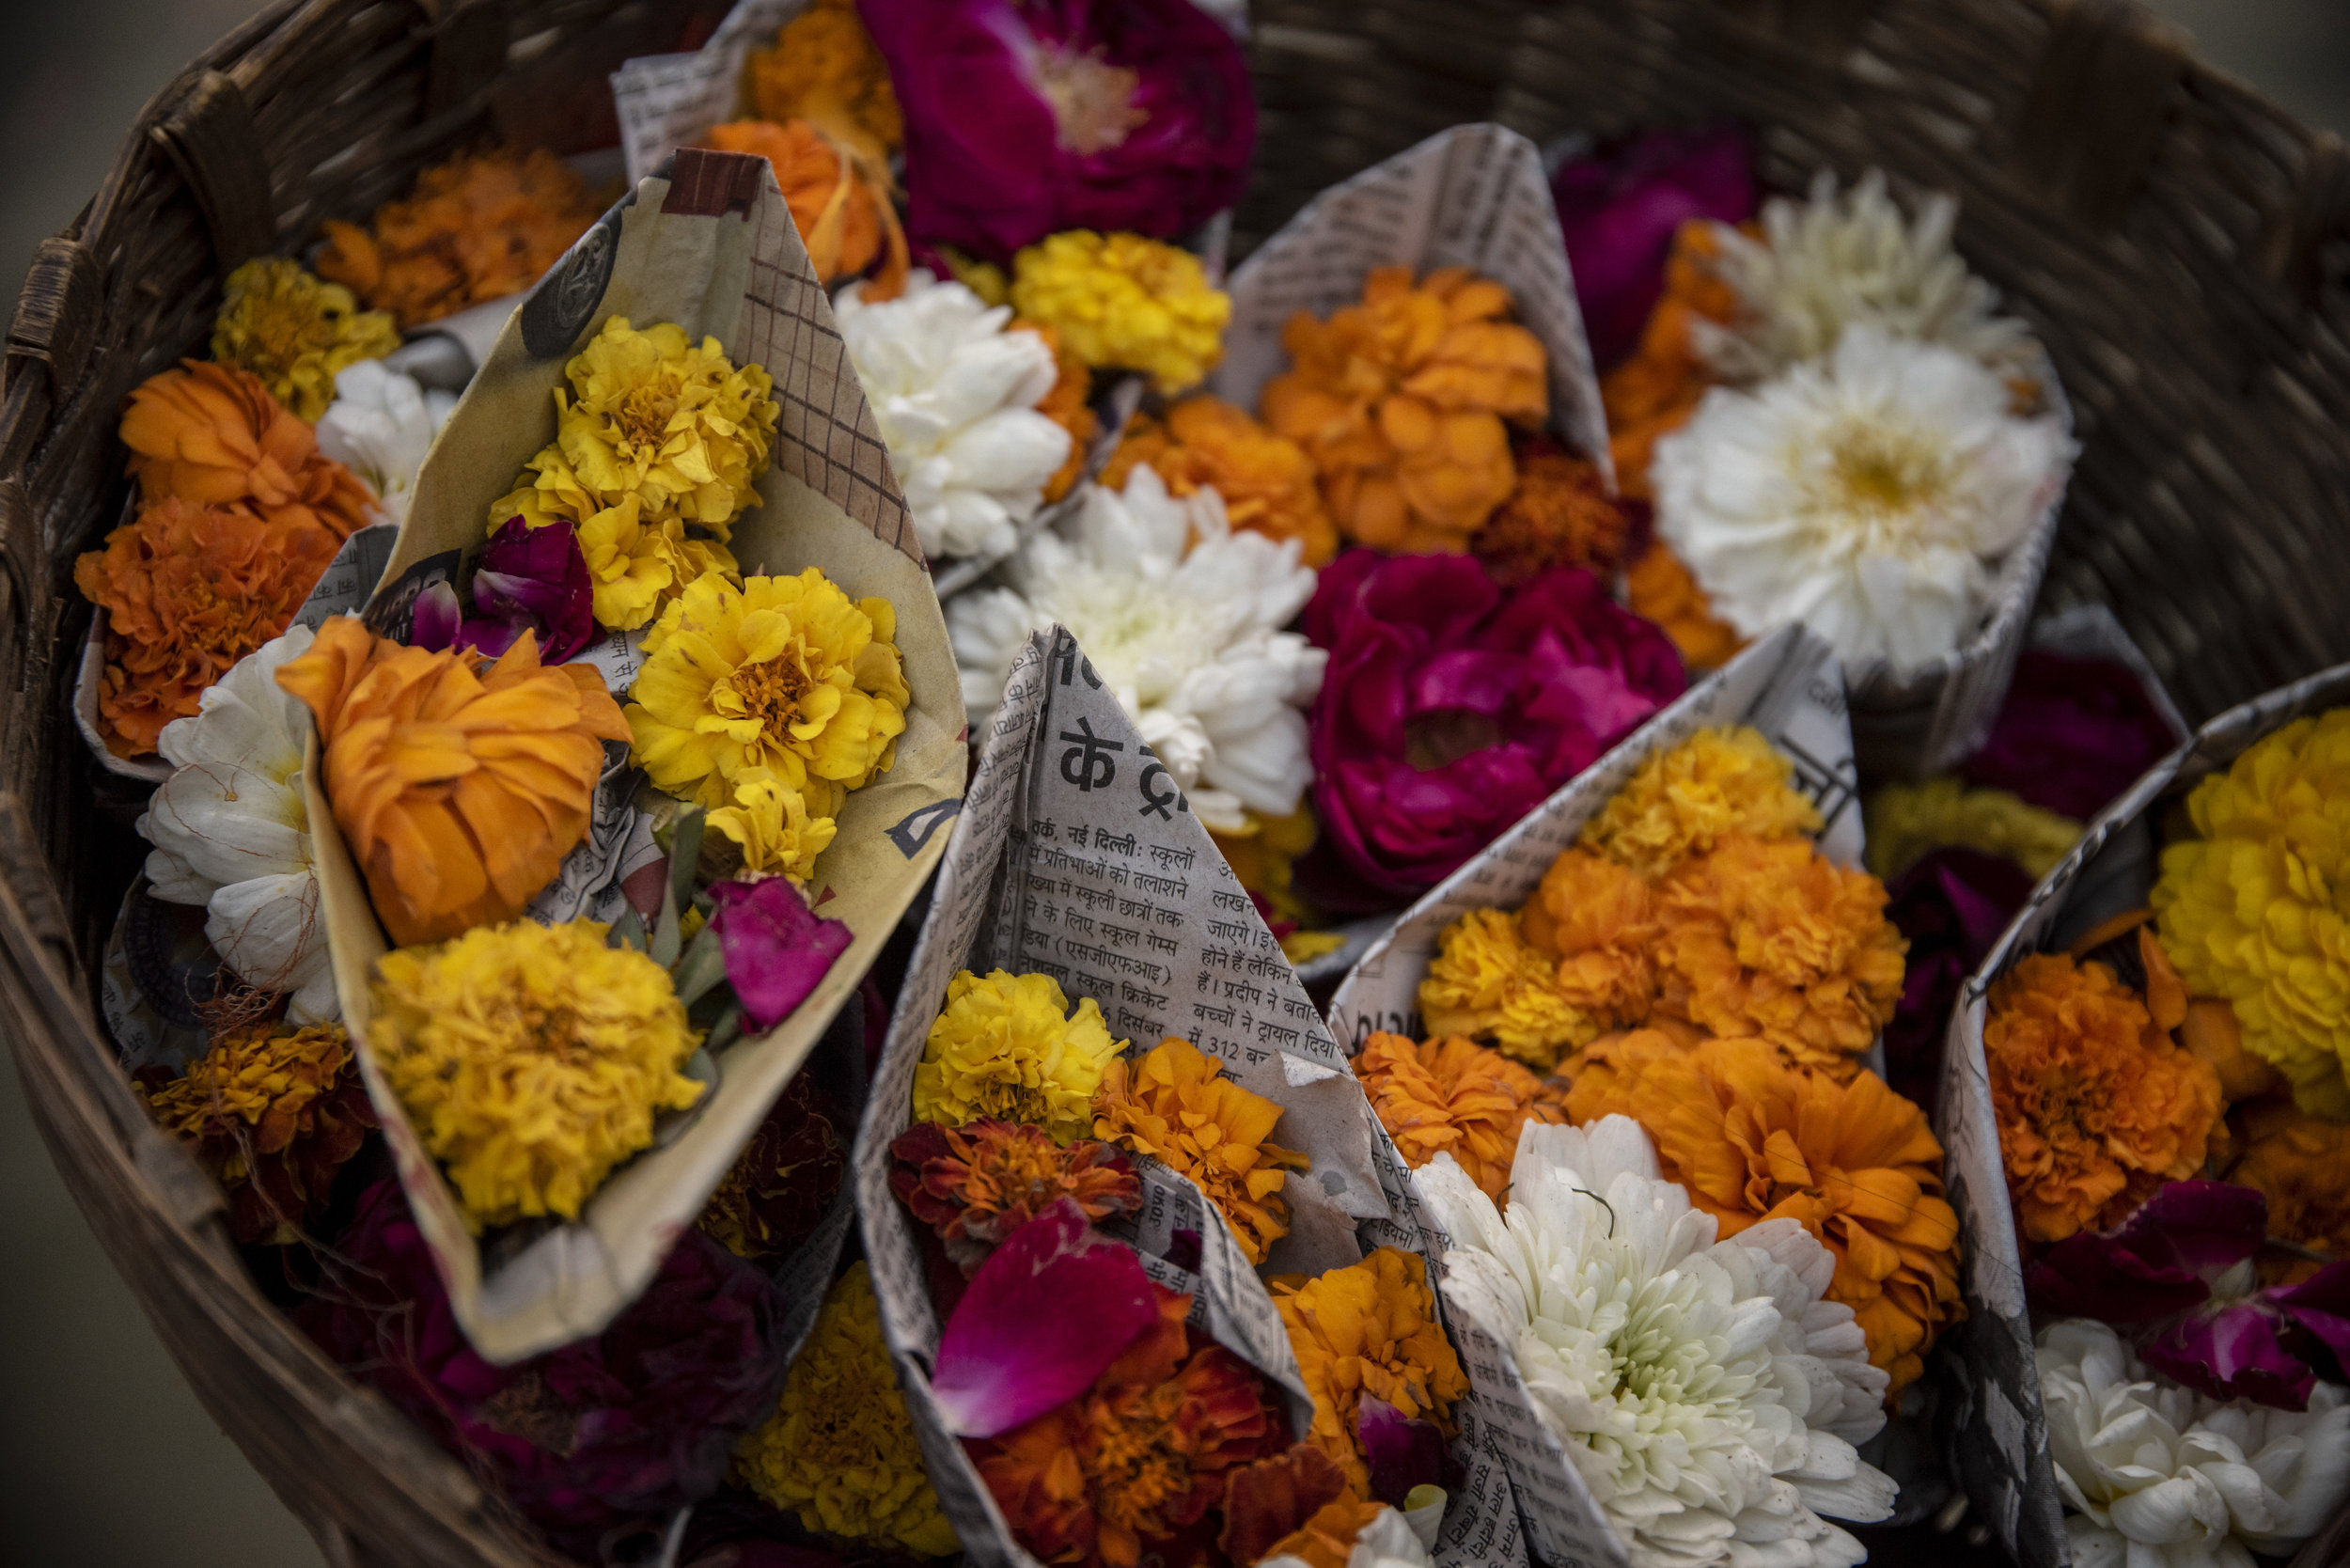 Flowers are sold along the shoreline as puja offerings to the Gods.